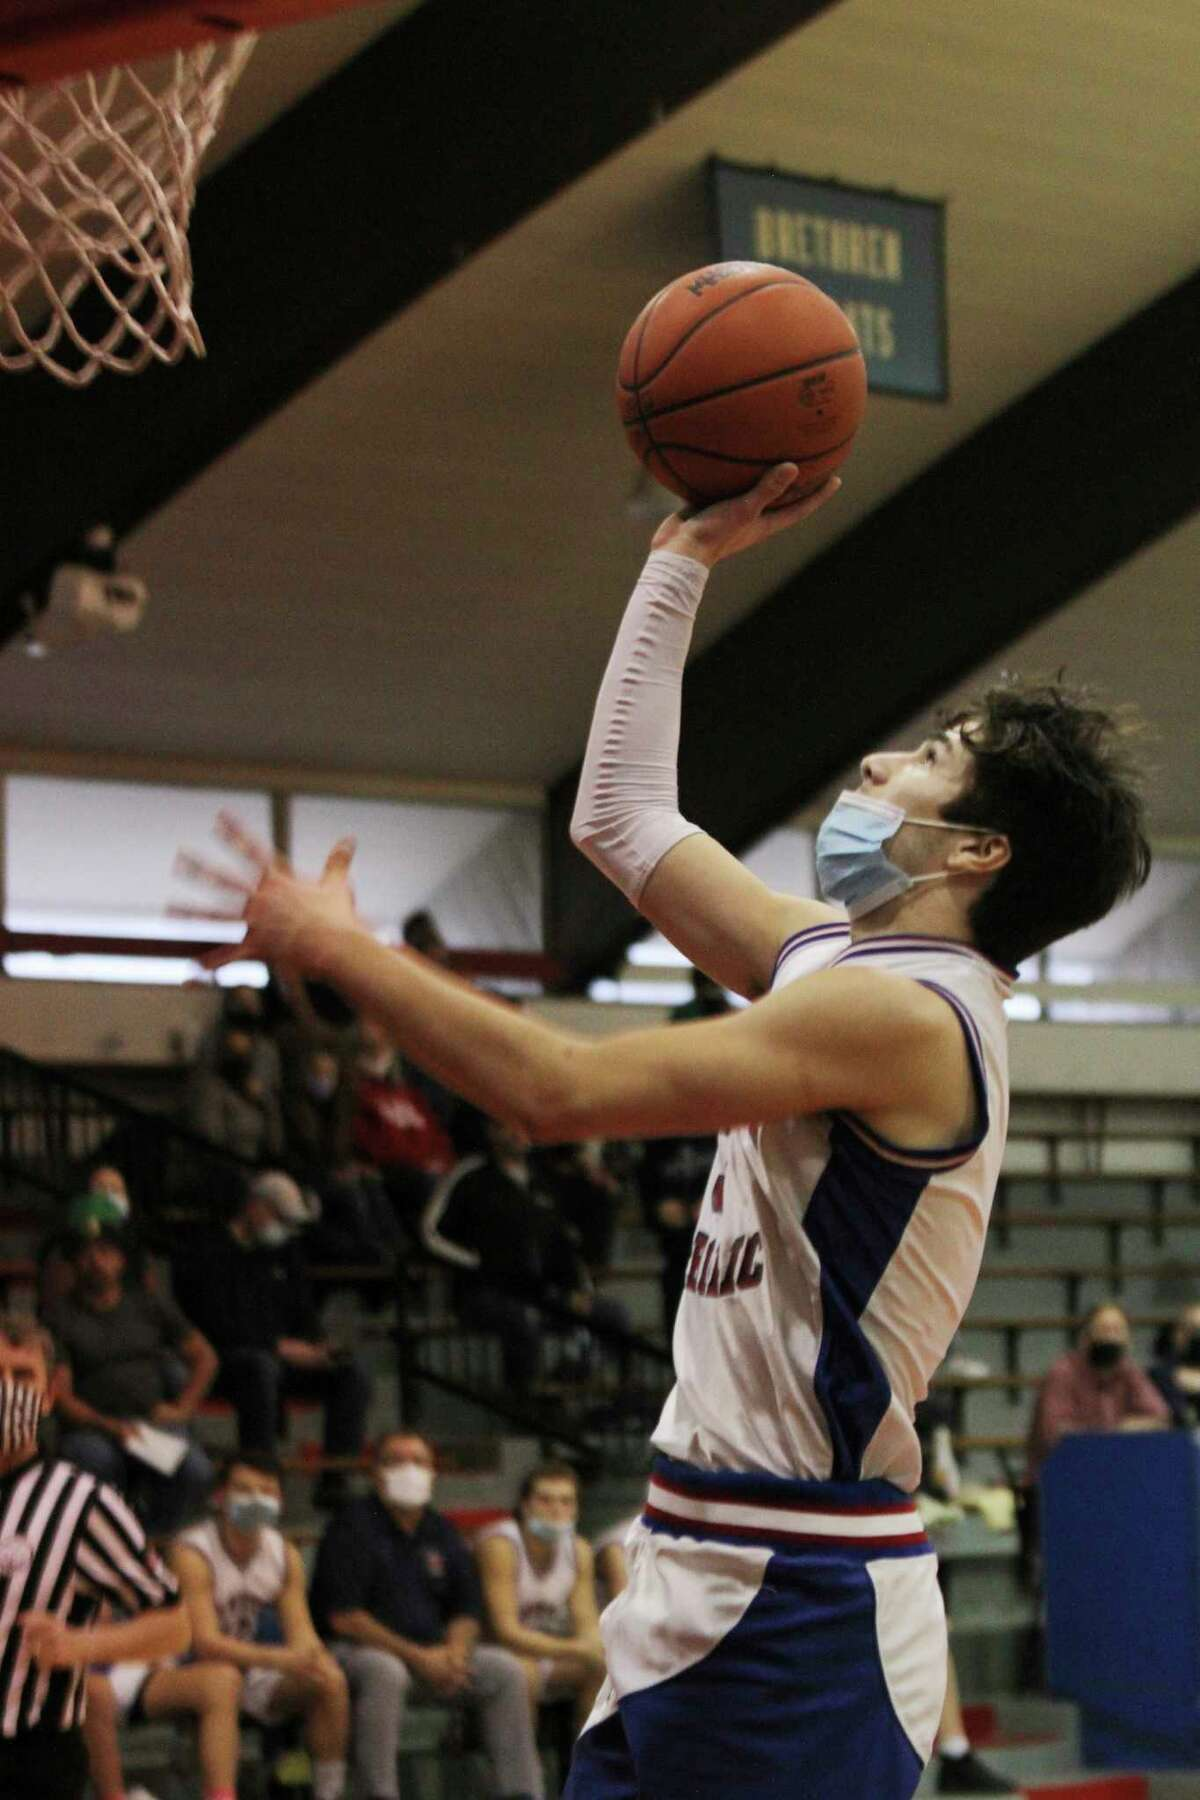 Three Manistee County boys basketball programs landed on the Team Academic All-State list this week: Manistee Catholic Central, Onekama and Manistee. (News Advocate file photo)